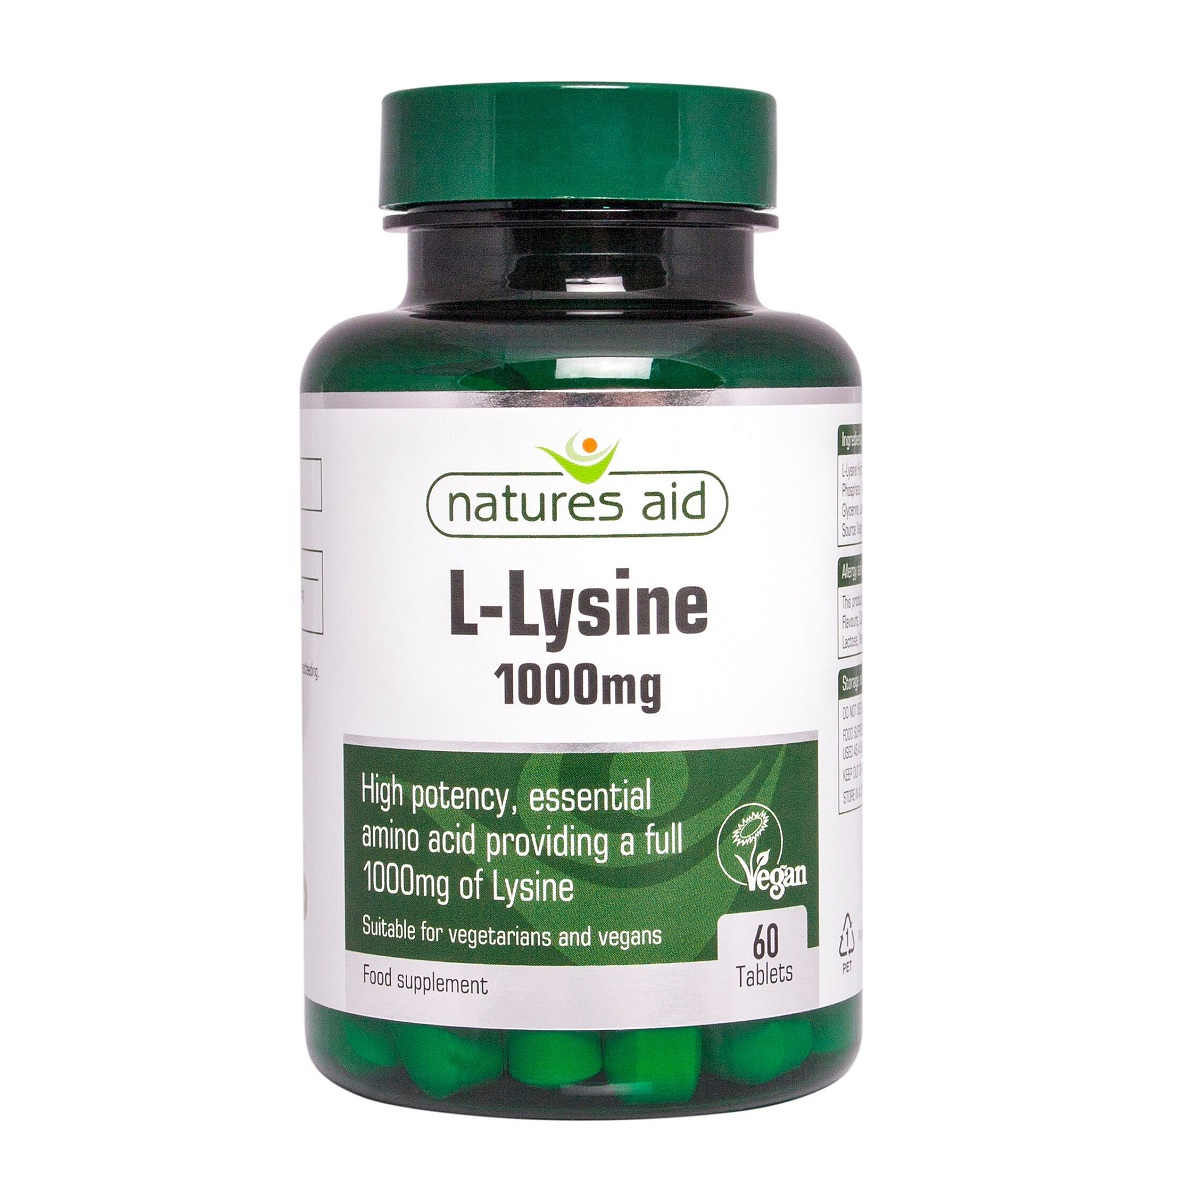 L-Lysine 1000mg, 60 tablete, Natures Aid